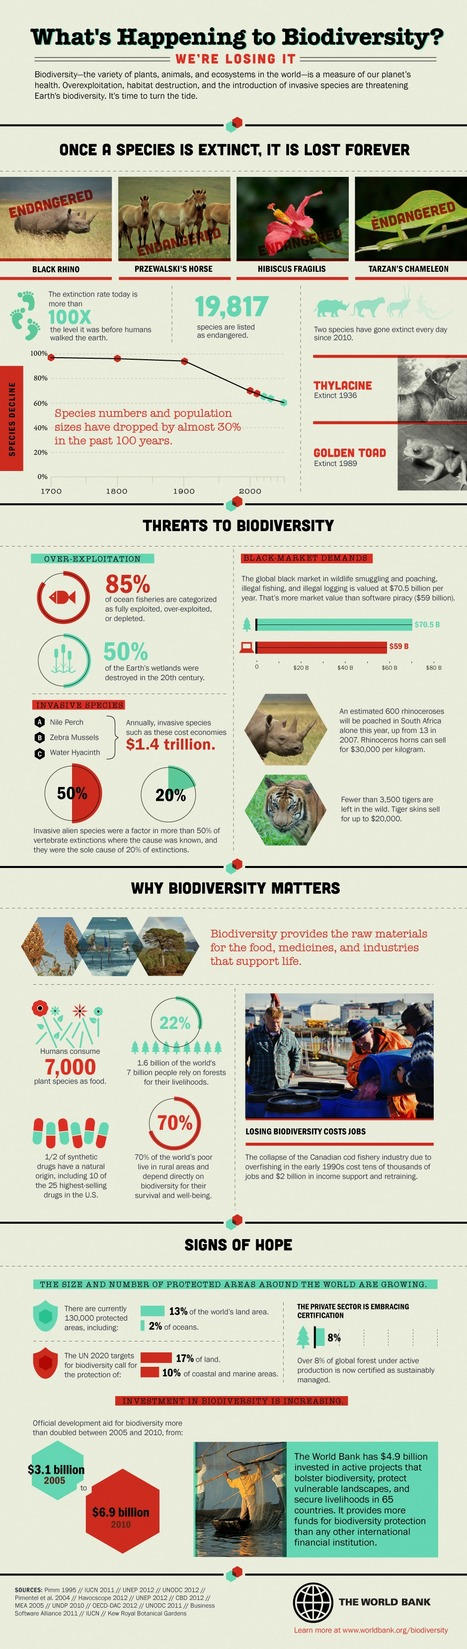 What's Happening to Biodiversity? [infographic] | following geography education | Scoop.it